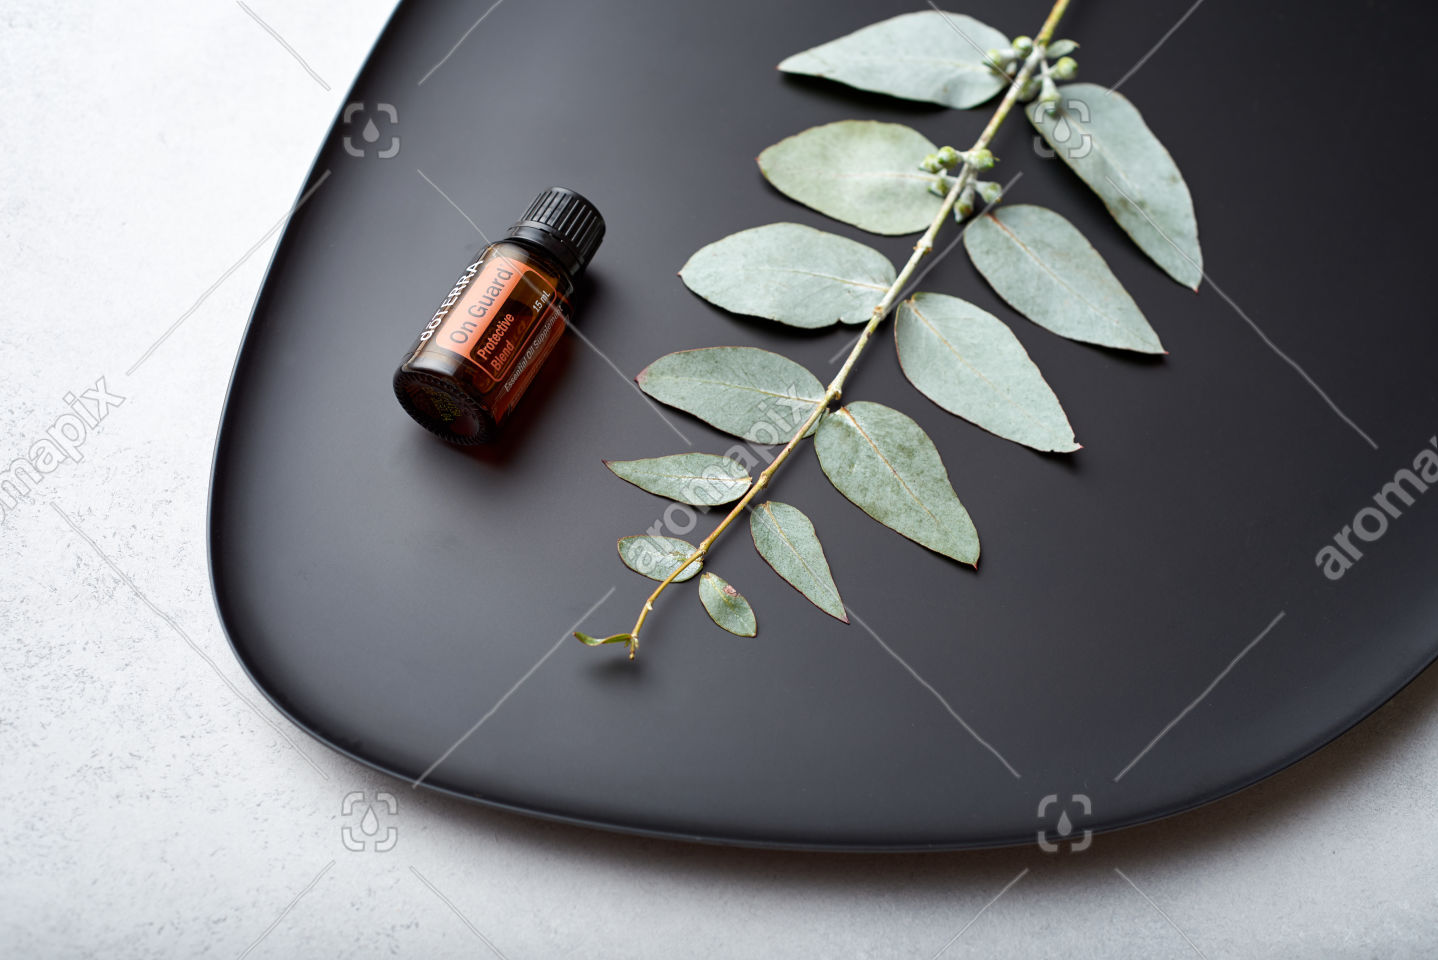 doTERRA On Guard and eucalyptus leaves on black plate